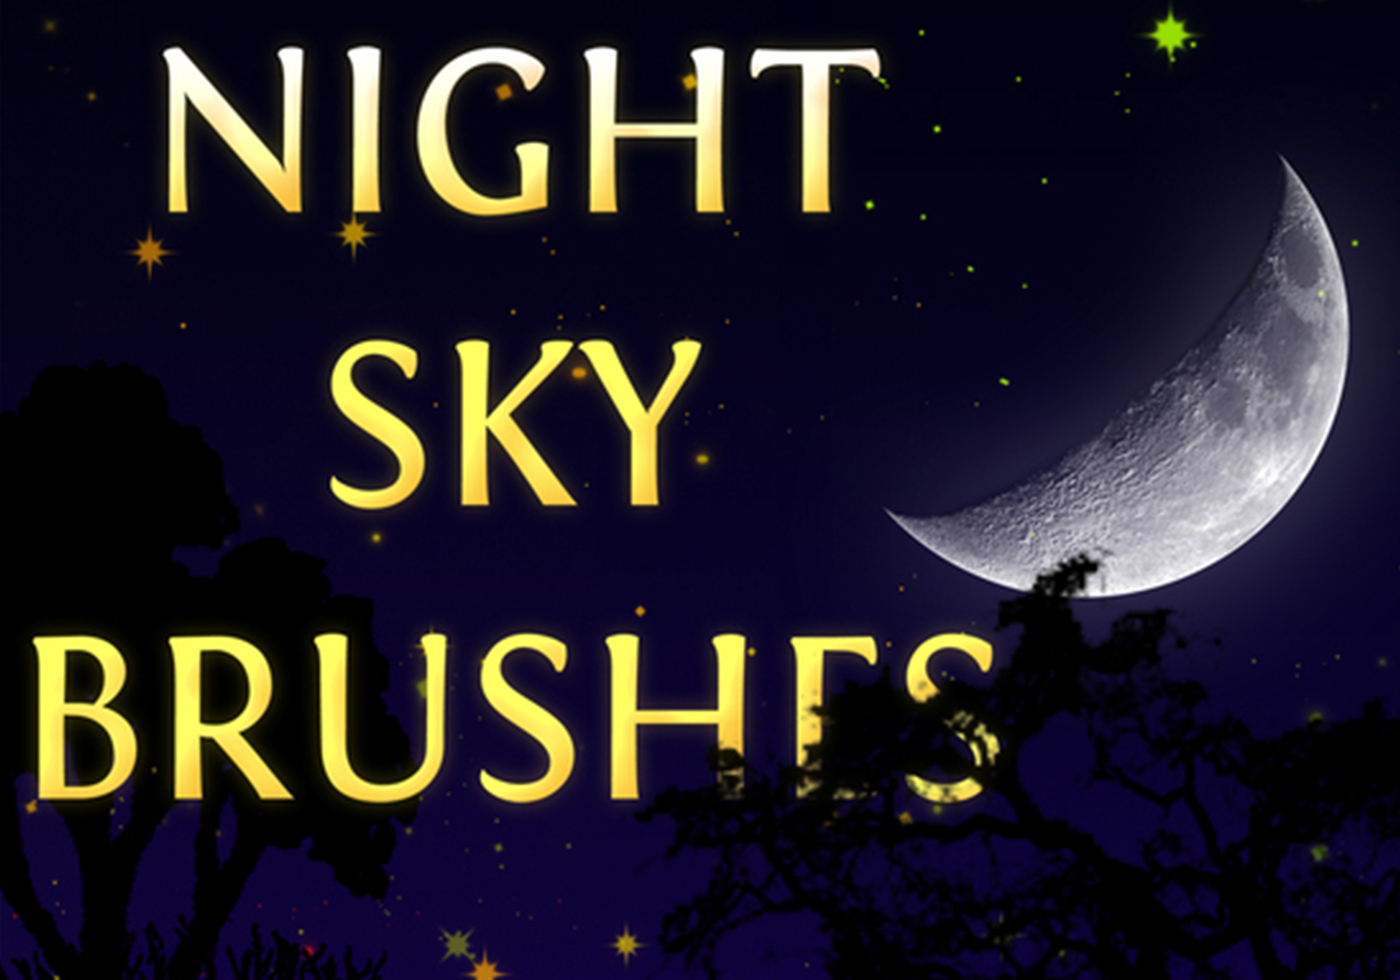 Night Sky Free Brushes by xara24 | Free Photoshop Brushes ...